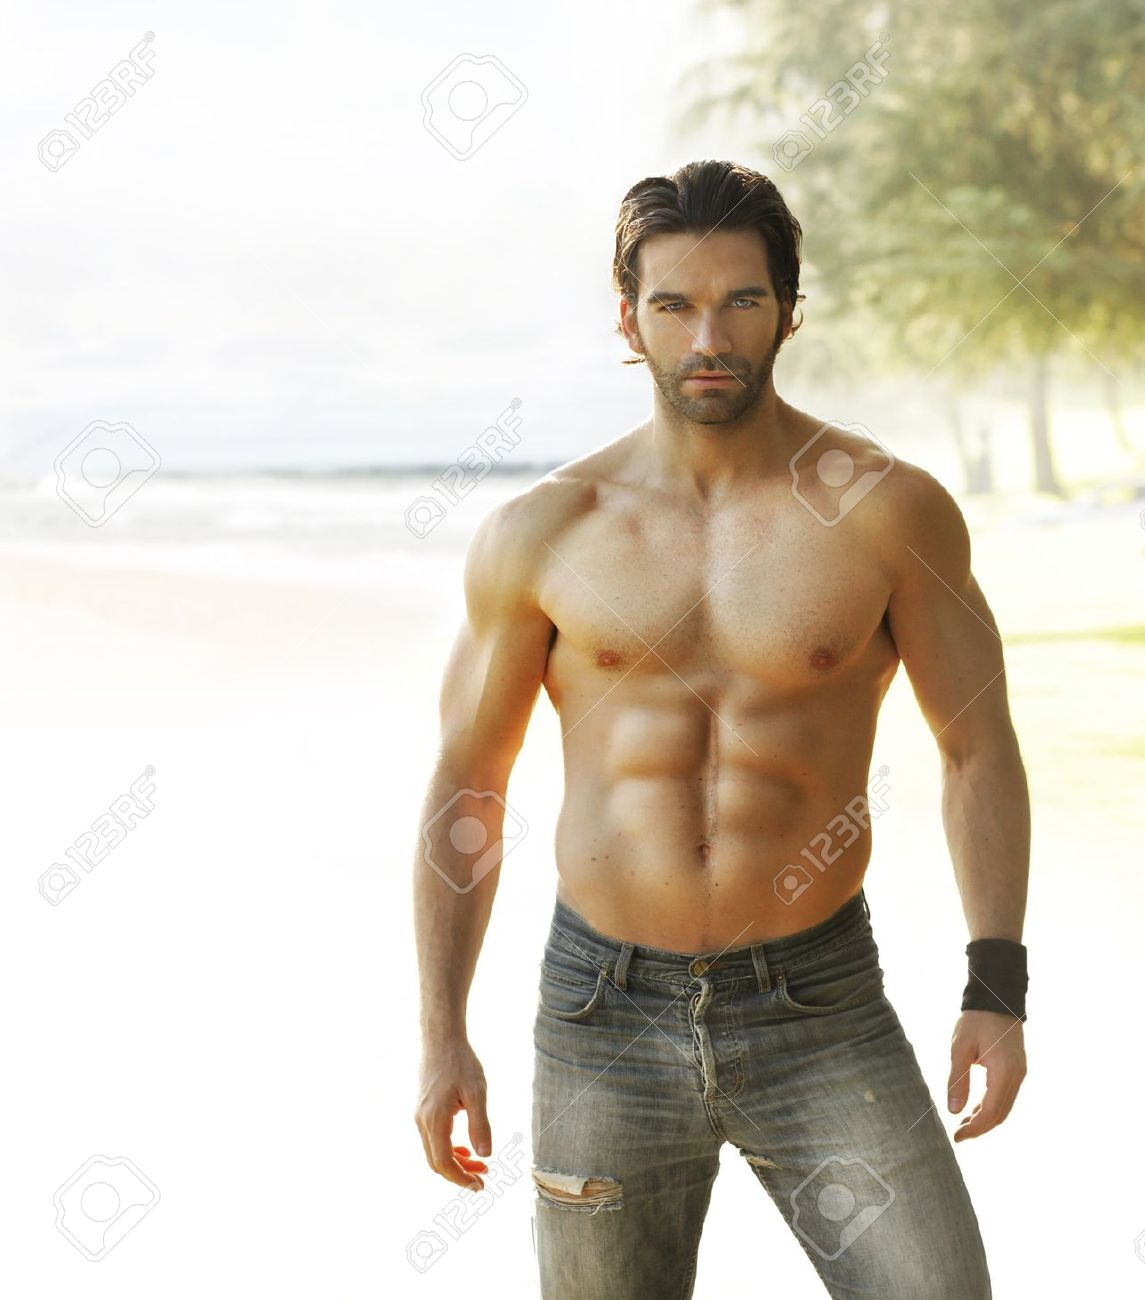 Portrait of a beautiful shirtless man in jeans relaxing outside Stock Photo - 11001286